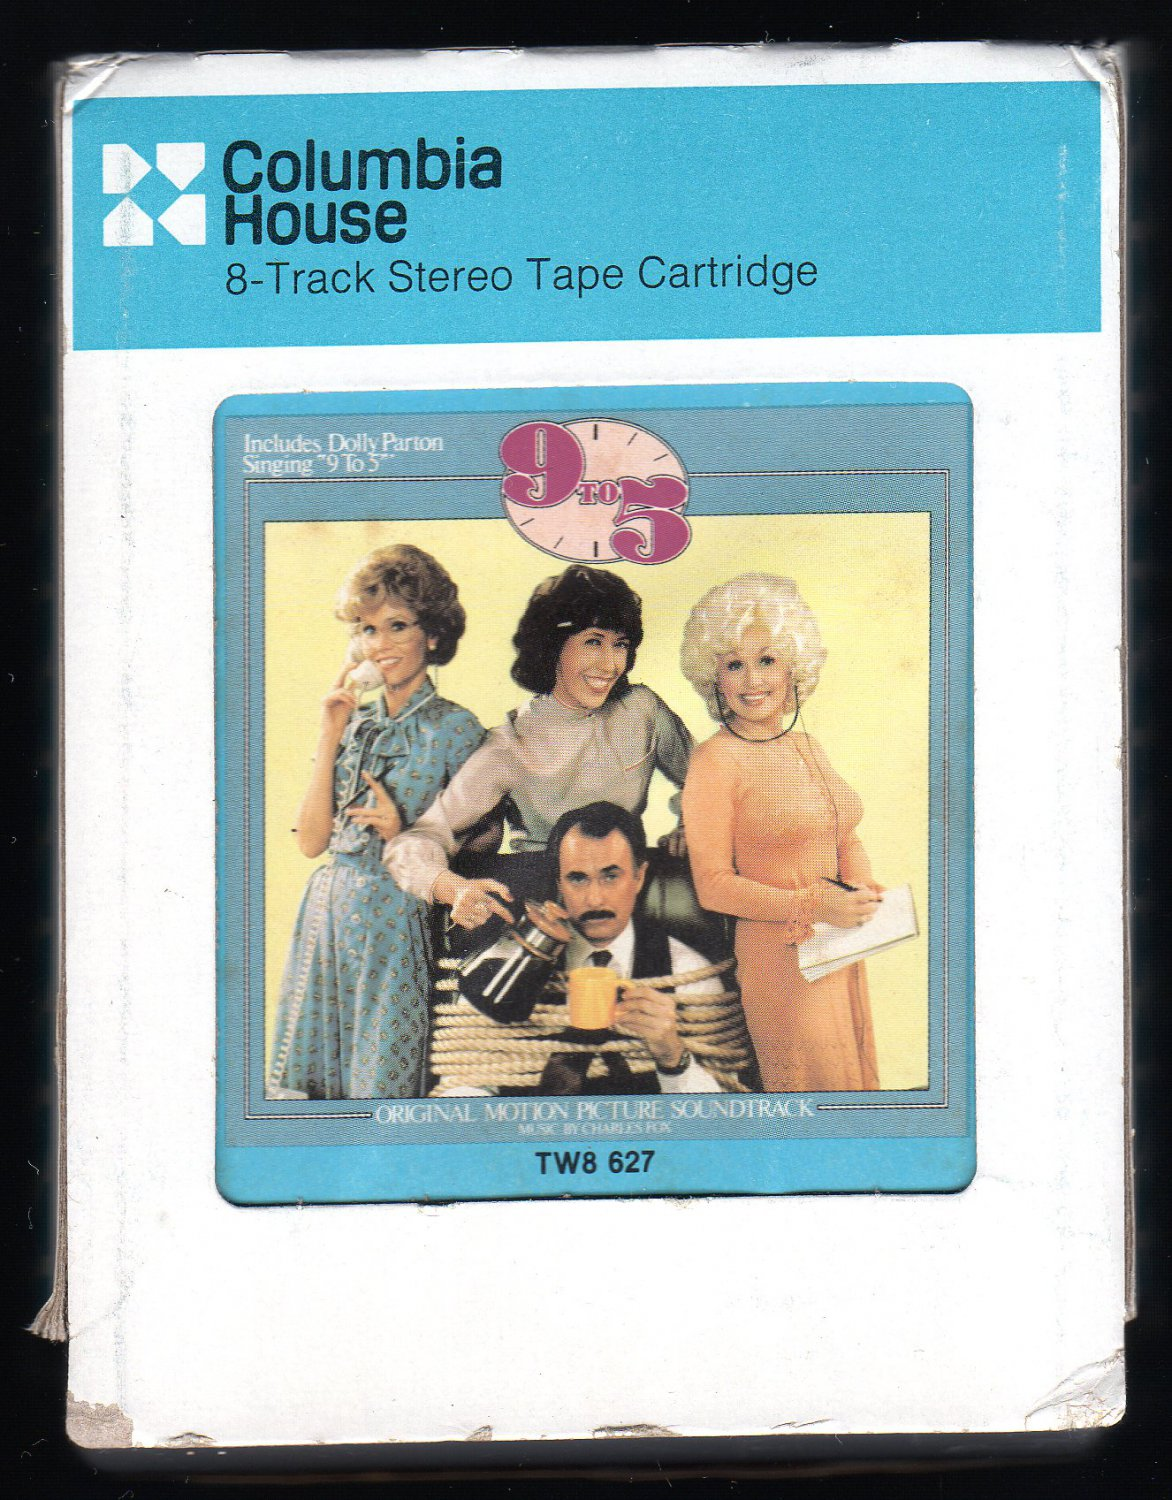 9 to 5 - Original Soundtrack Recording 1980 CRC 20CENTURY A32 8-TRACK TAPE